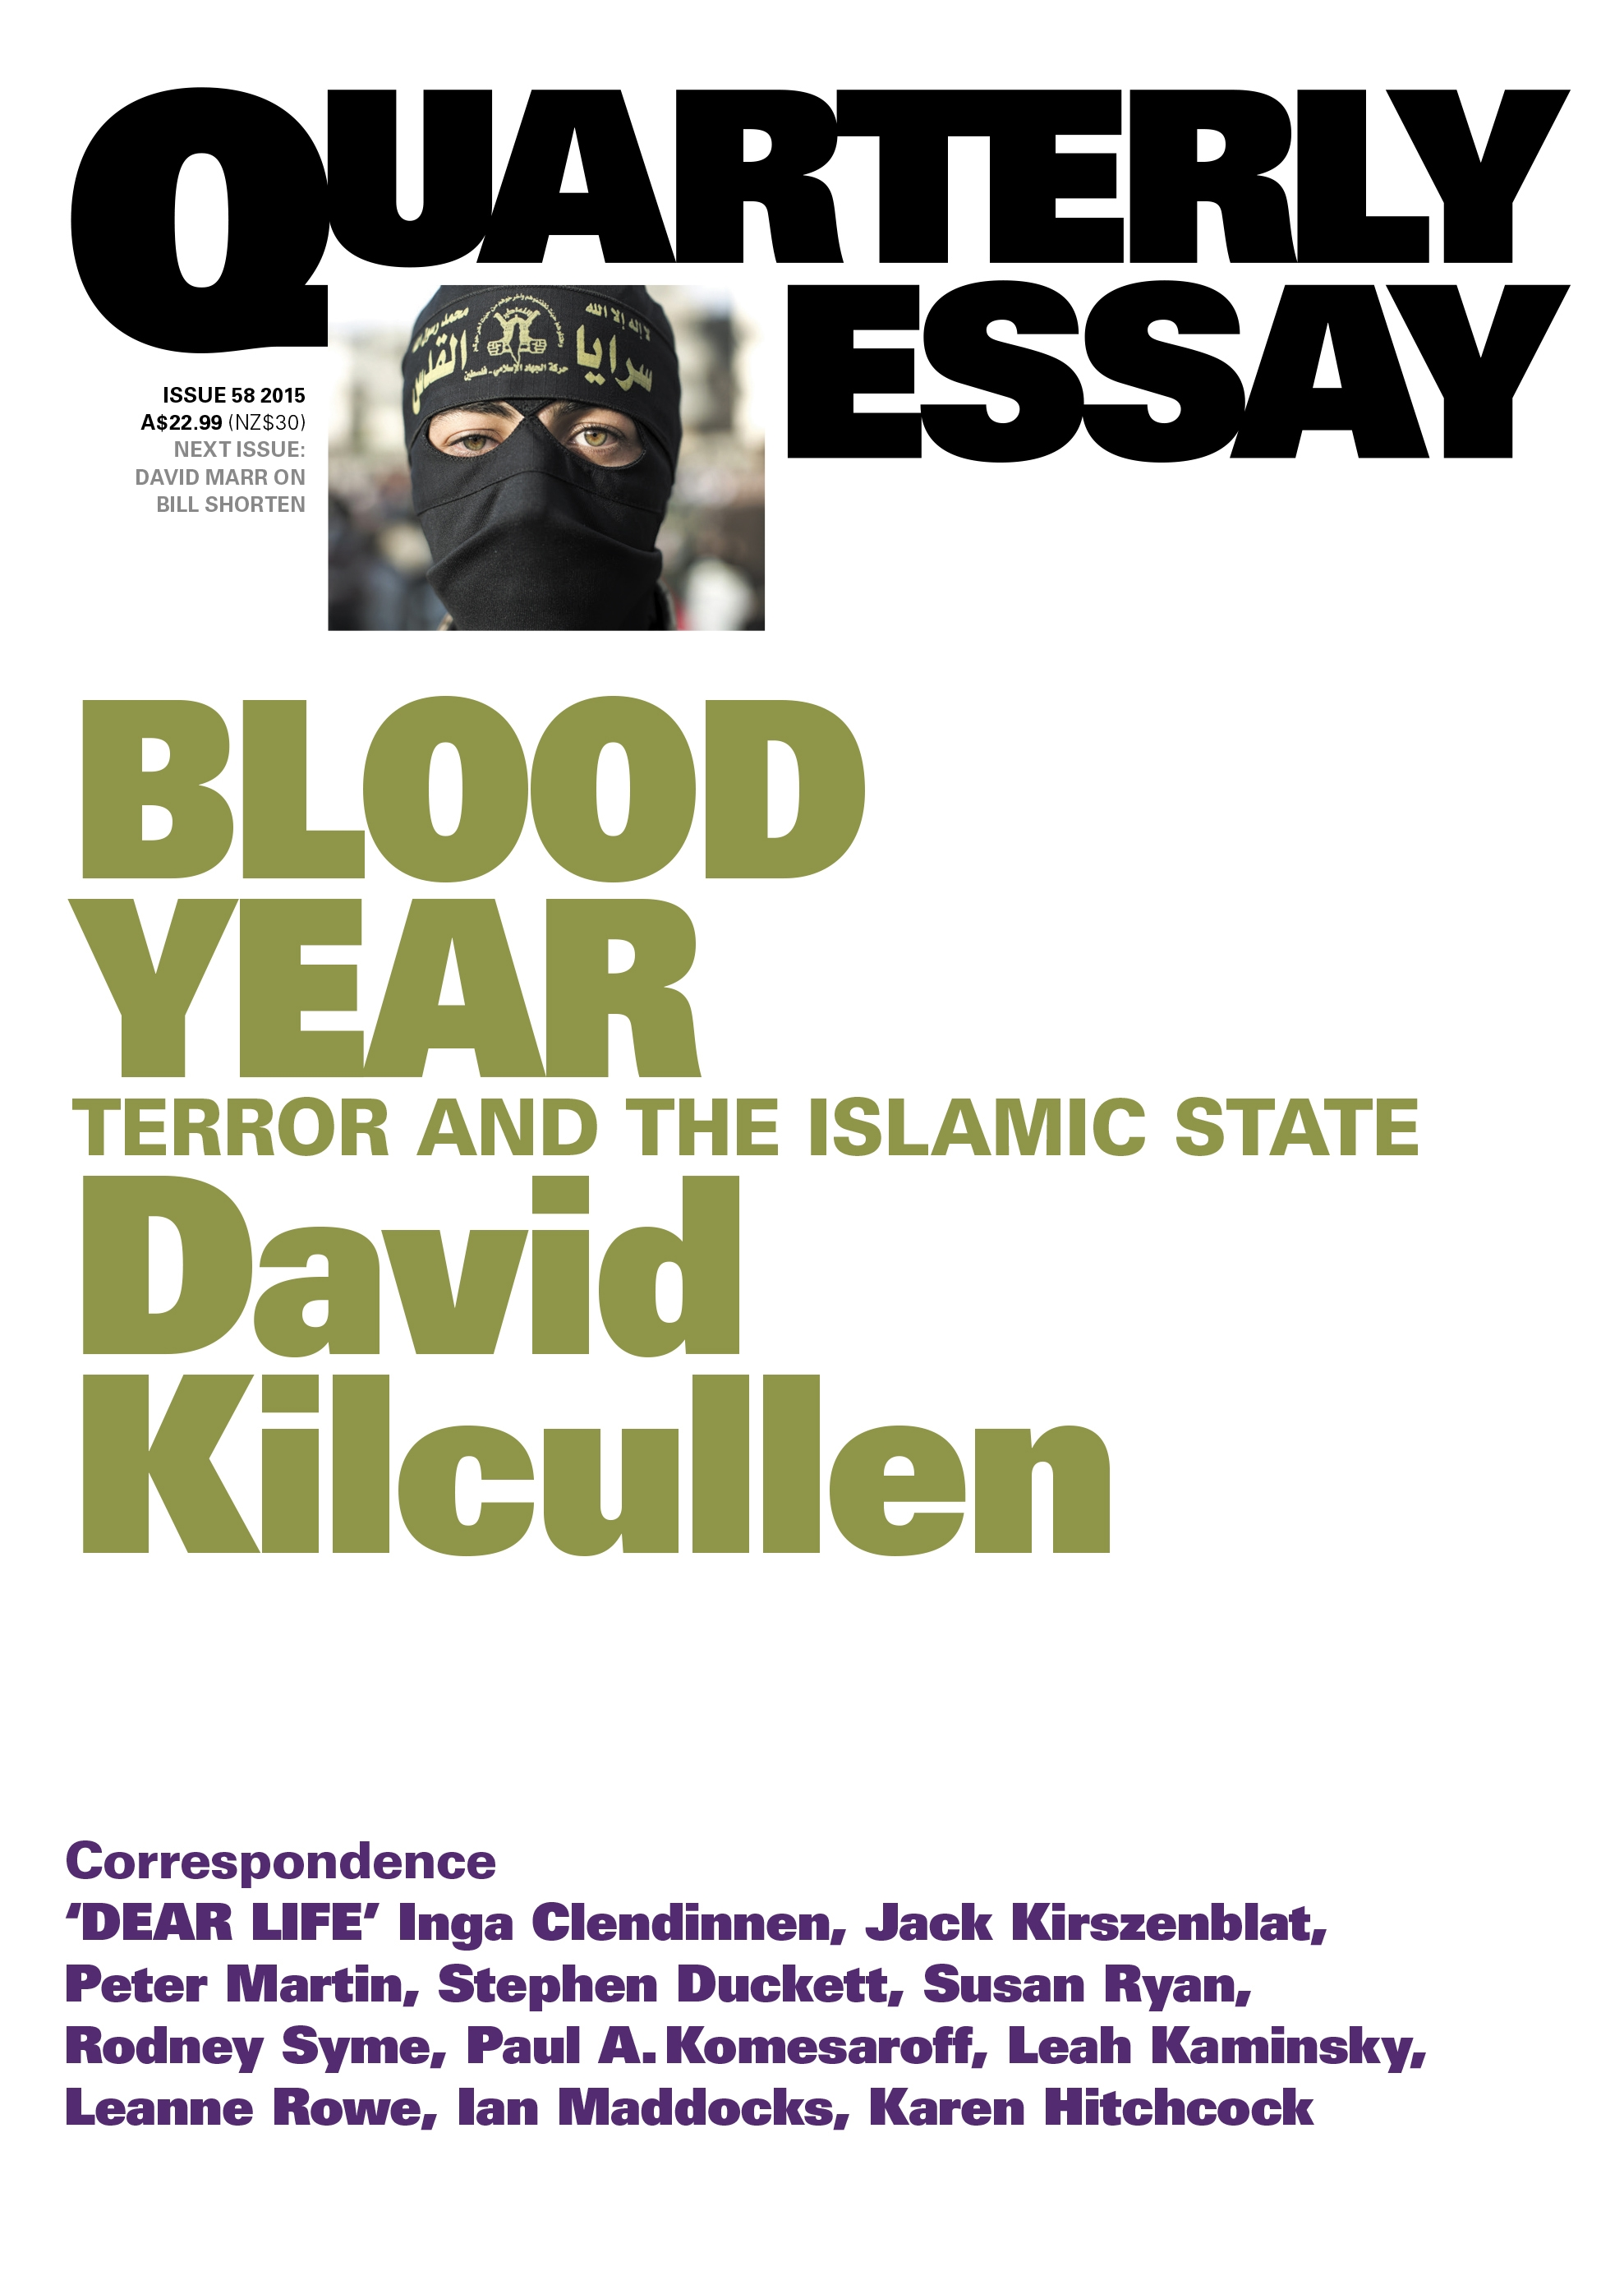 blood year terror and the islamic state quarterly essay issue 58 blood year terror and the islamic state quarterly essay issue 58